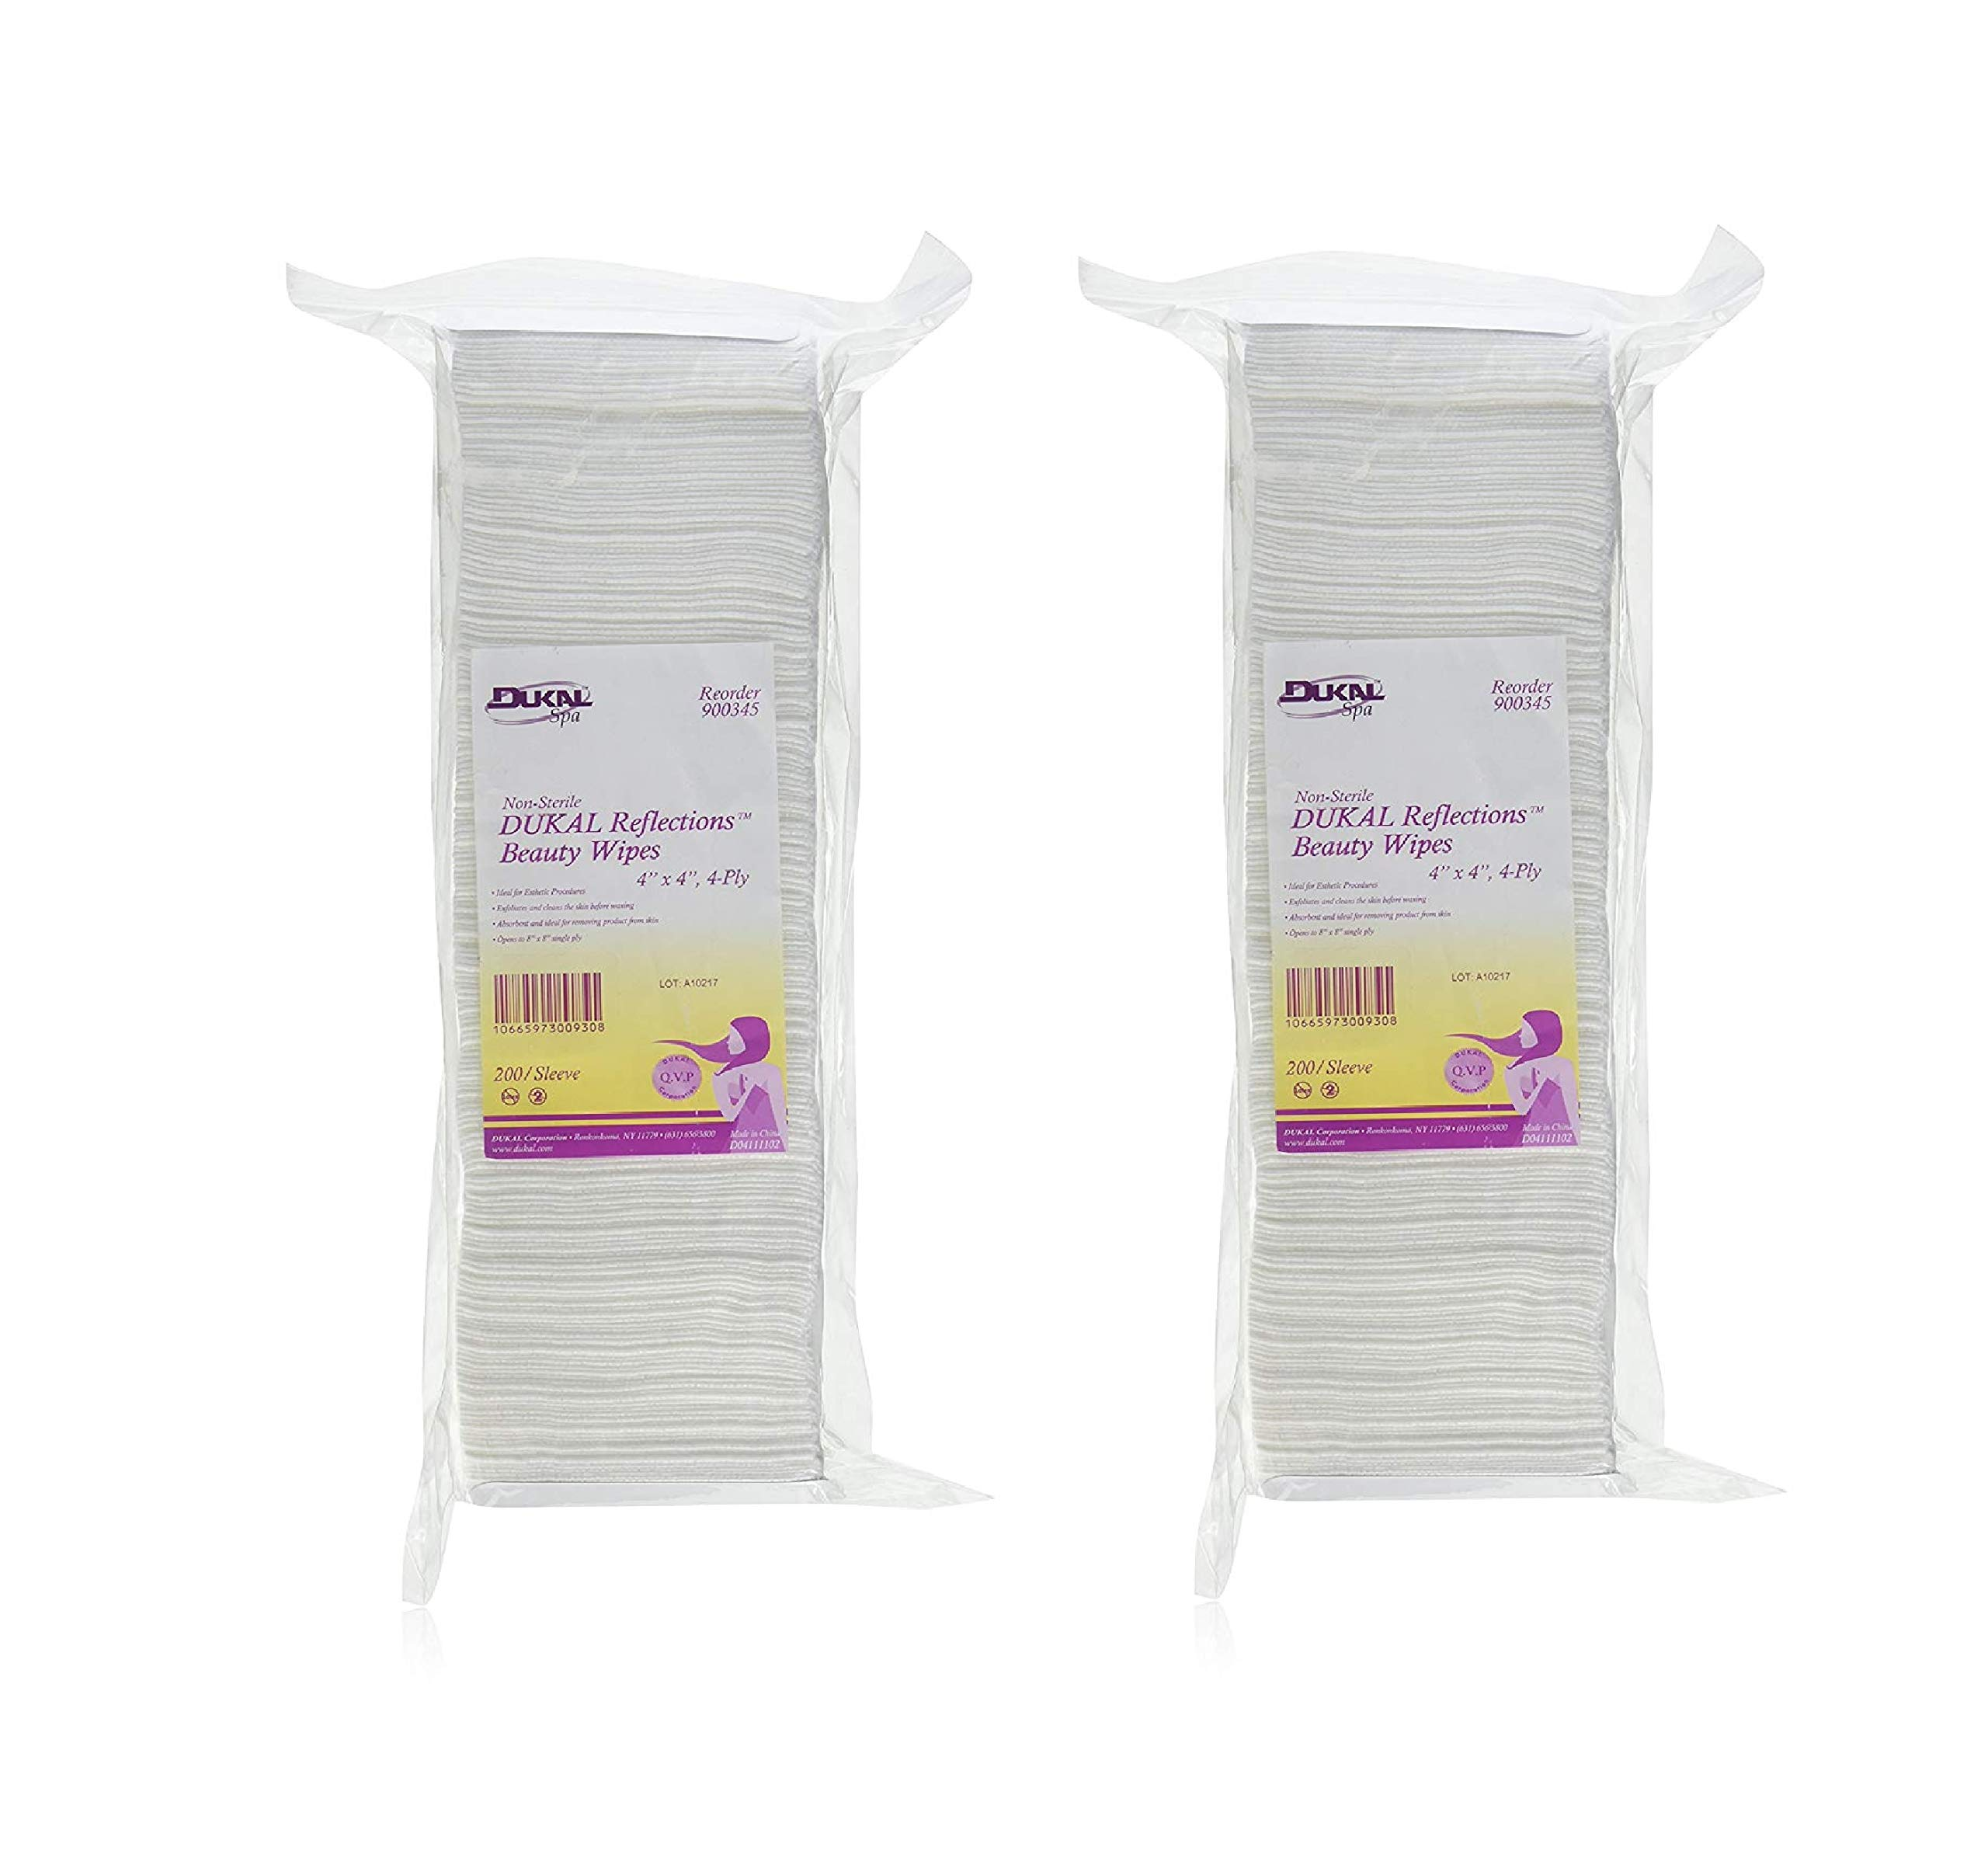 Non-Sterile - DUKAL Reflections Beauty Wipes - Latex Free (4-Ply) (4'' x 4'') - 200 count (2-Pack)